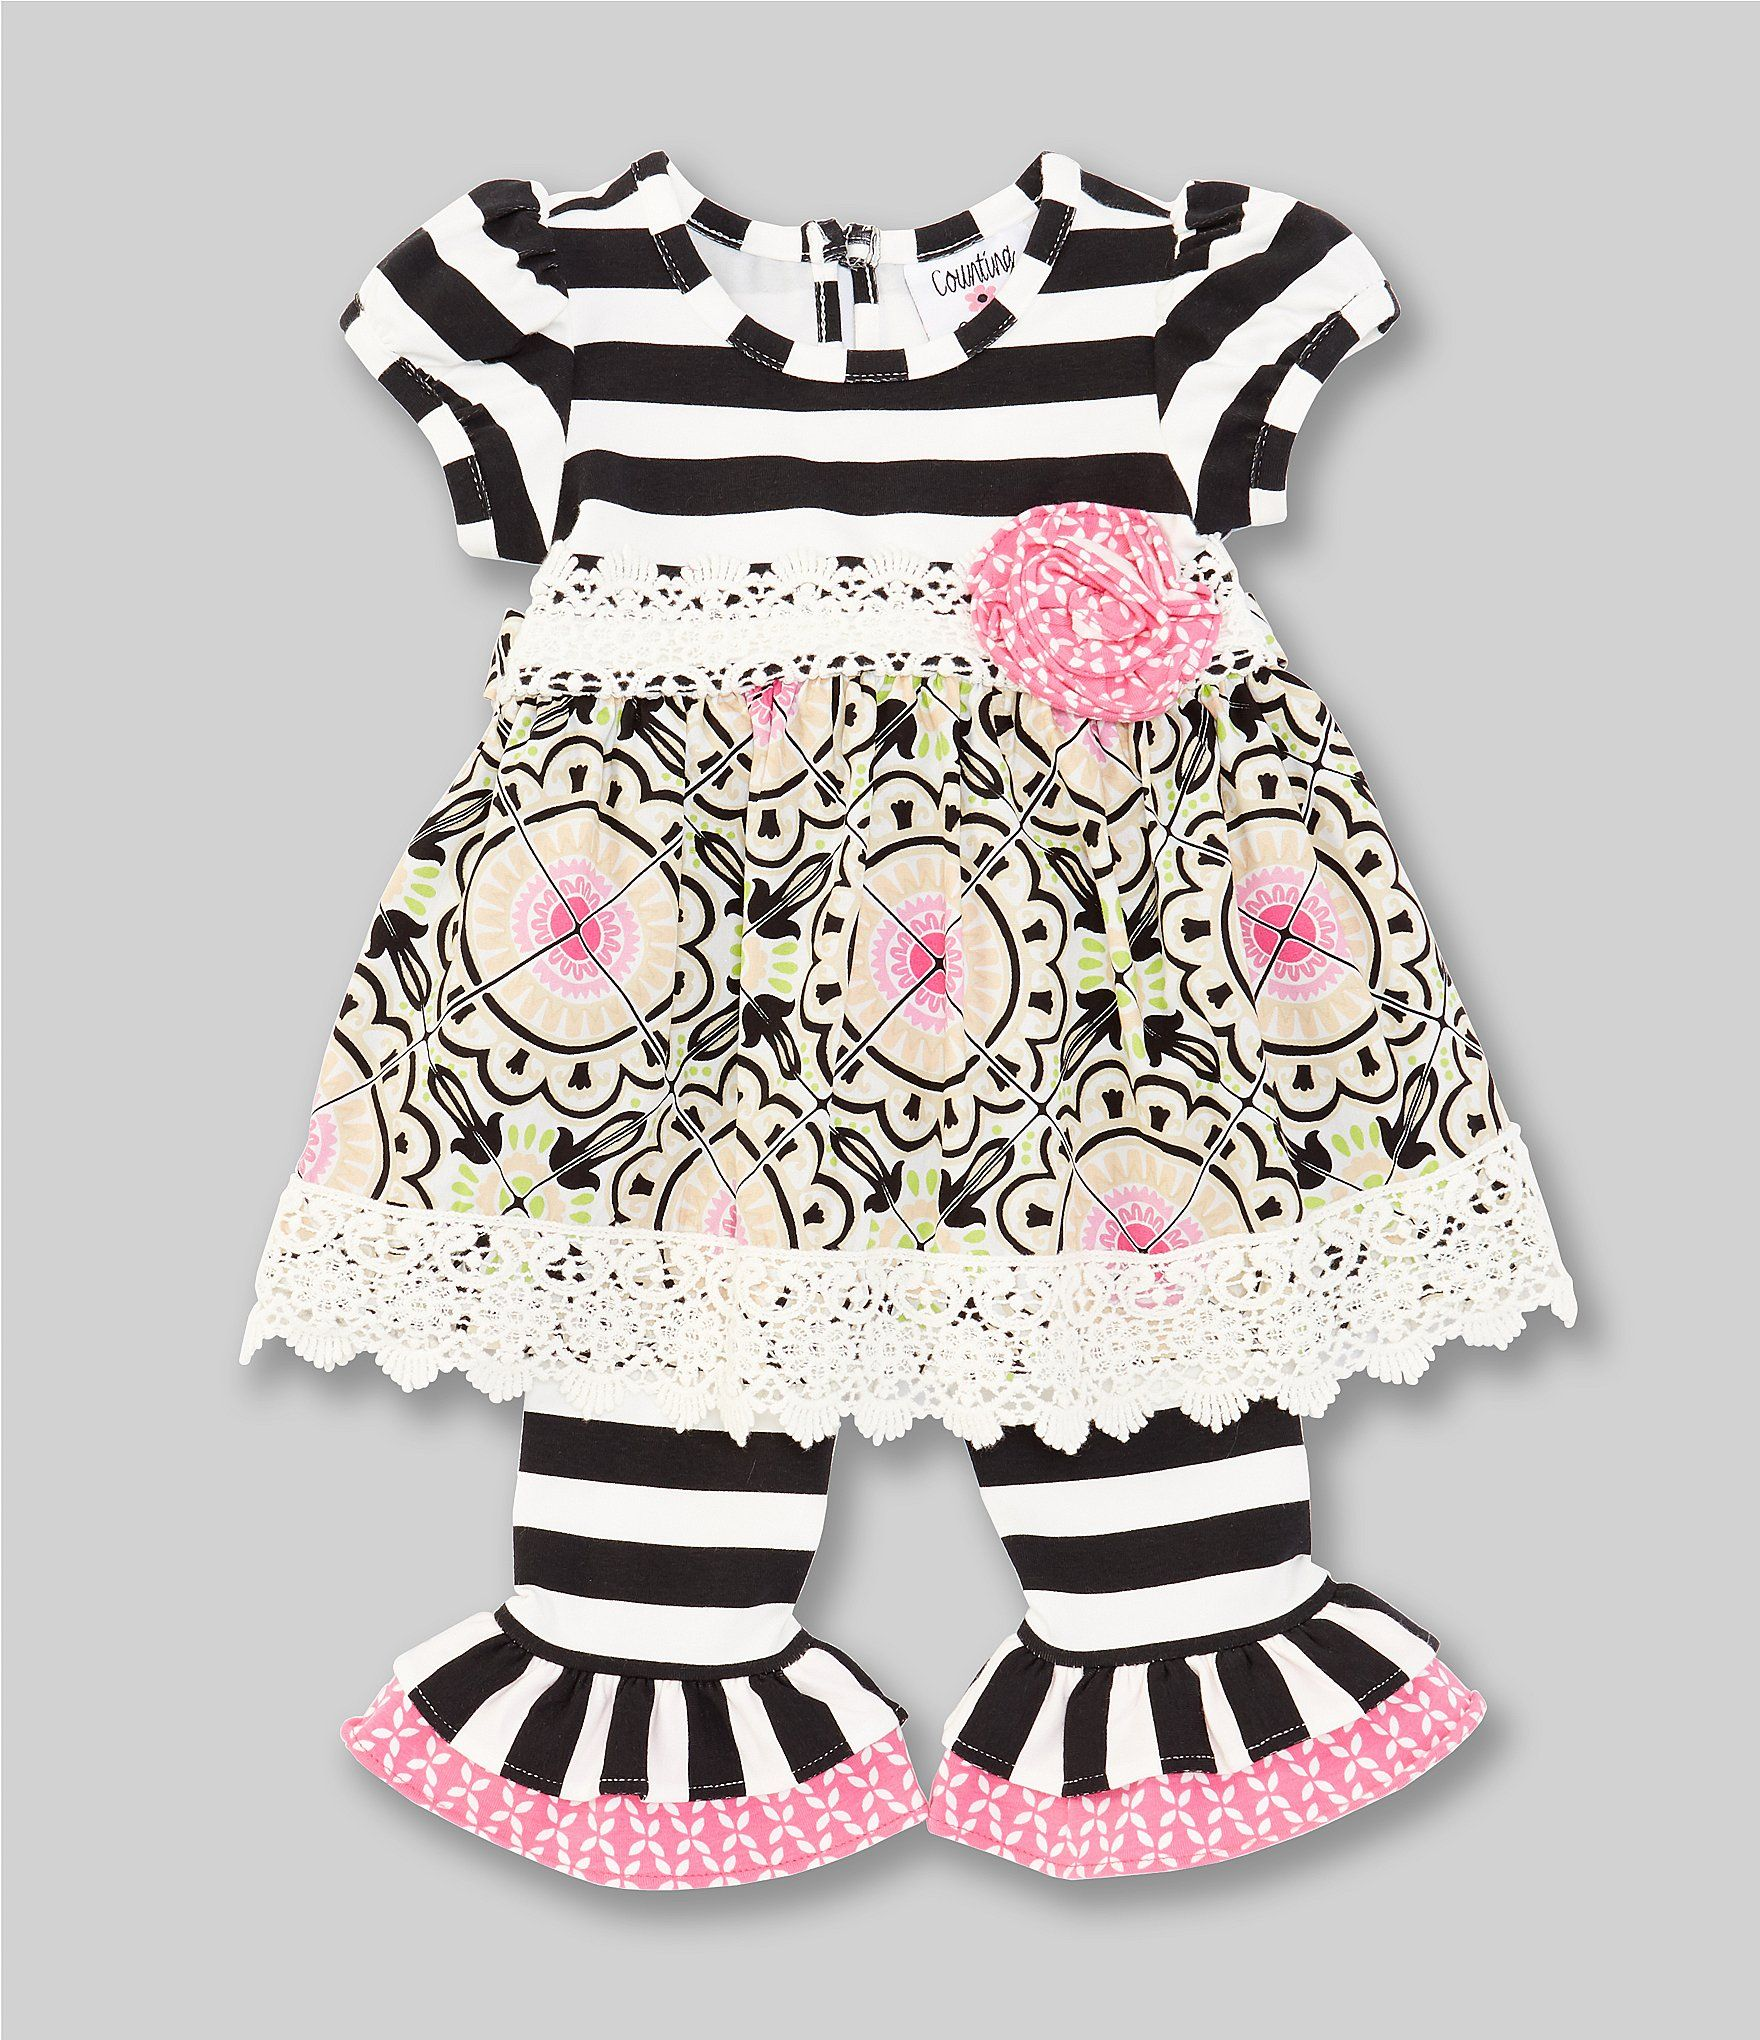 Counting Daisies Baby Girls 3-9 Months StripedMixed-Media Dress  Striped Leggings Set - Black 9 Months #stripedleggings